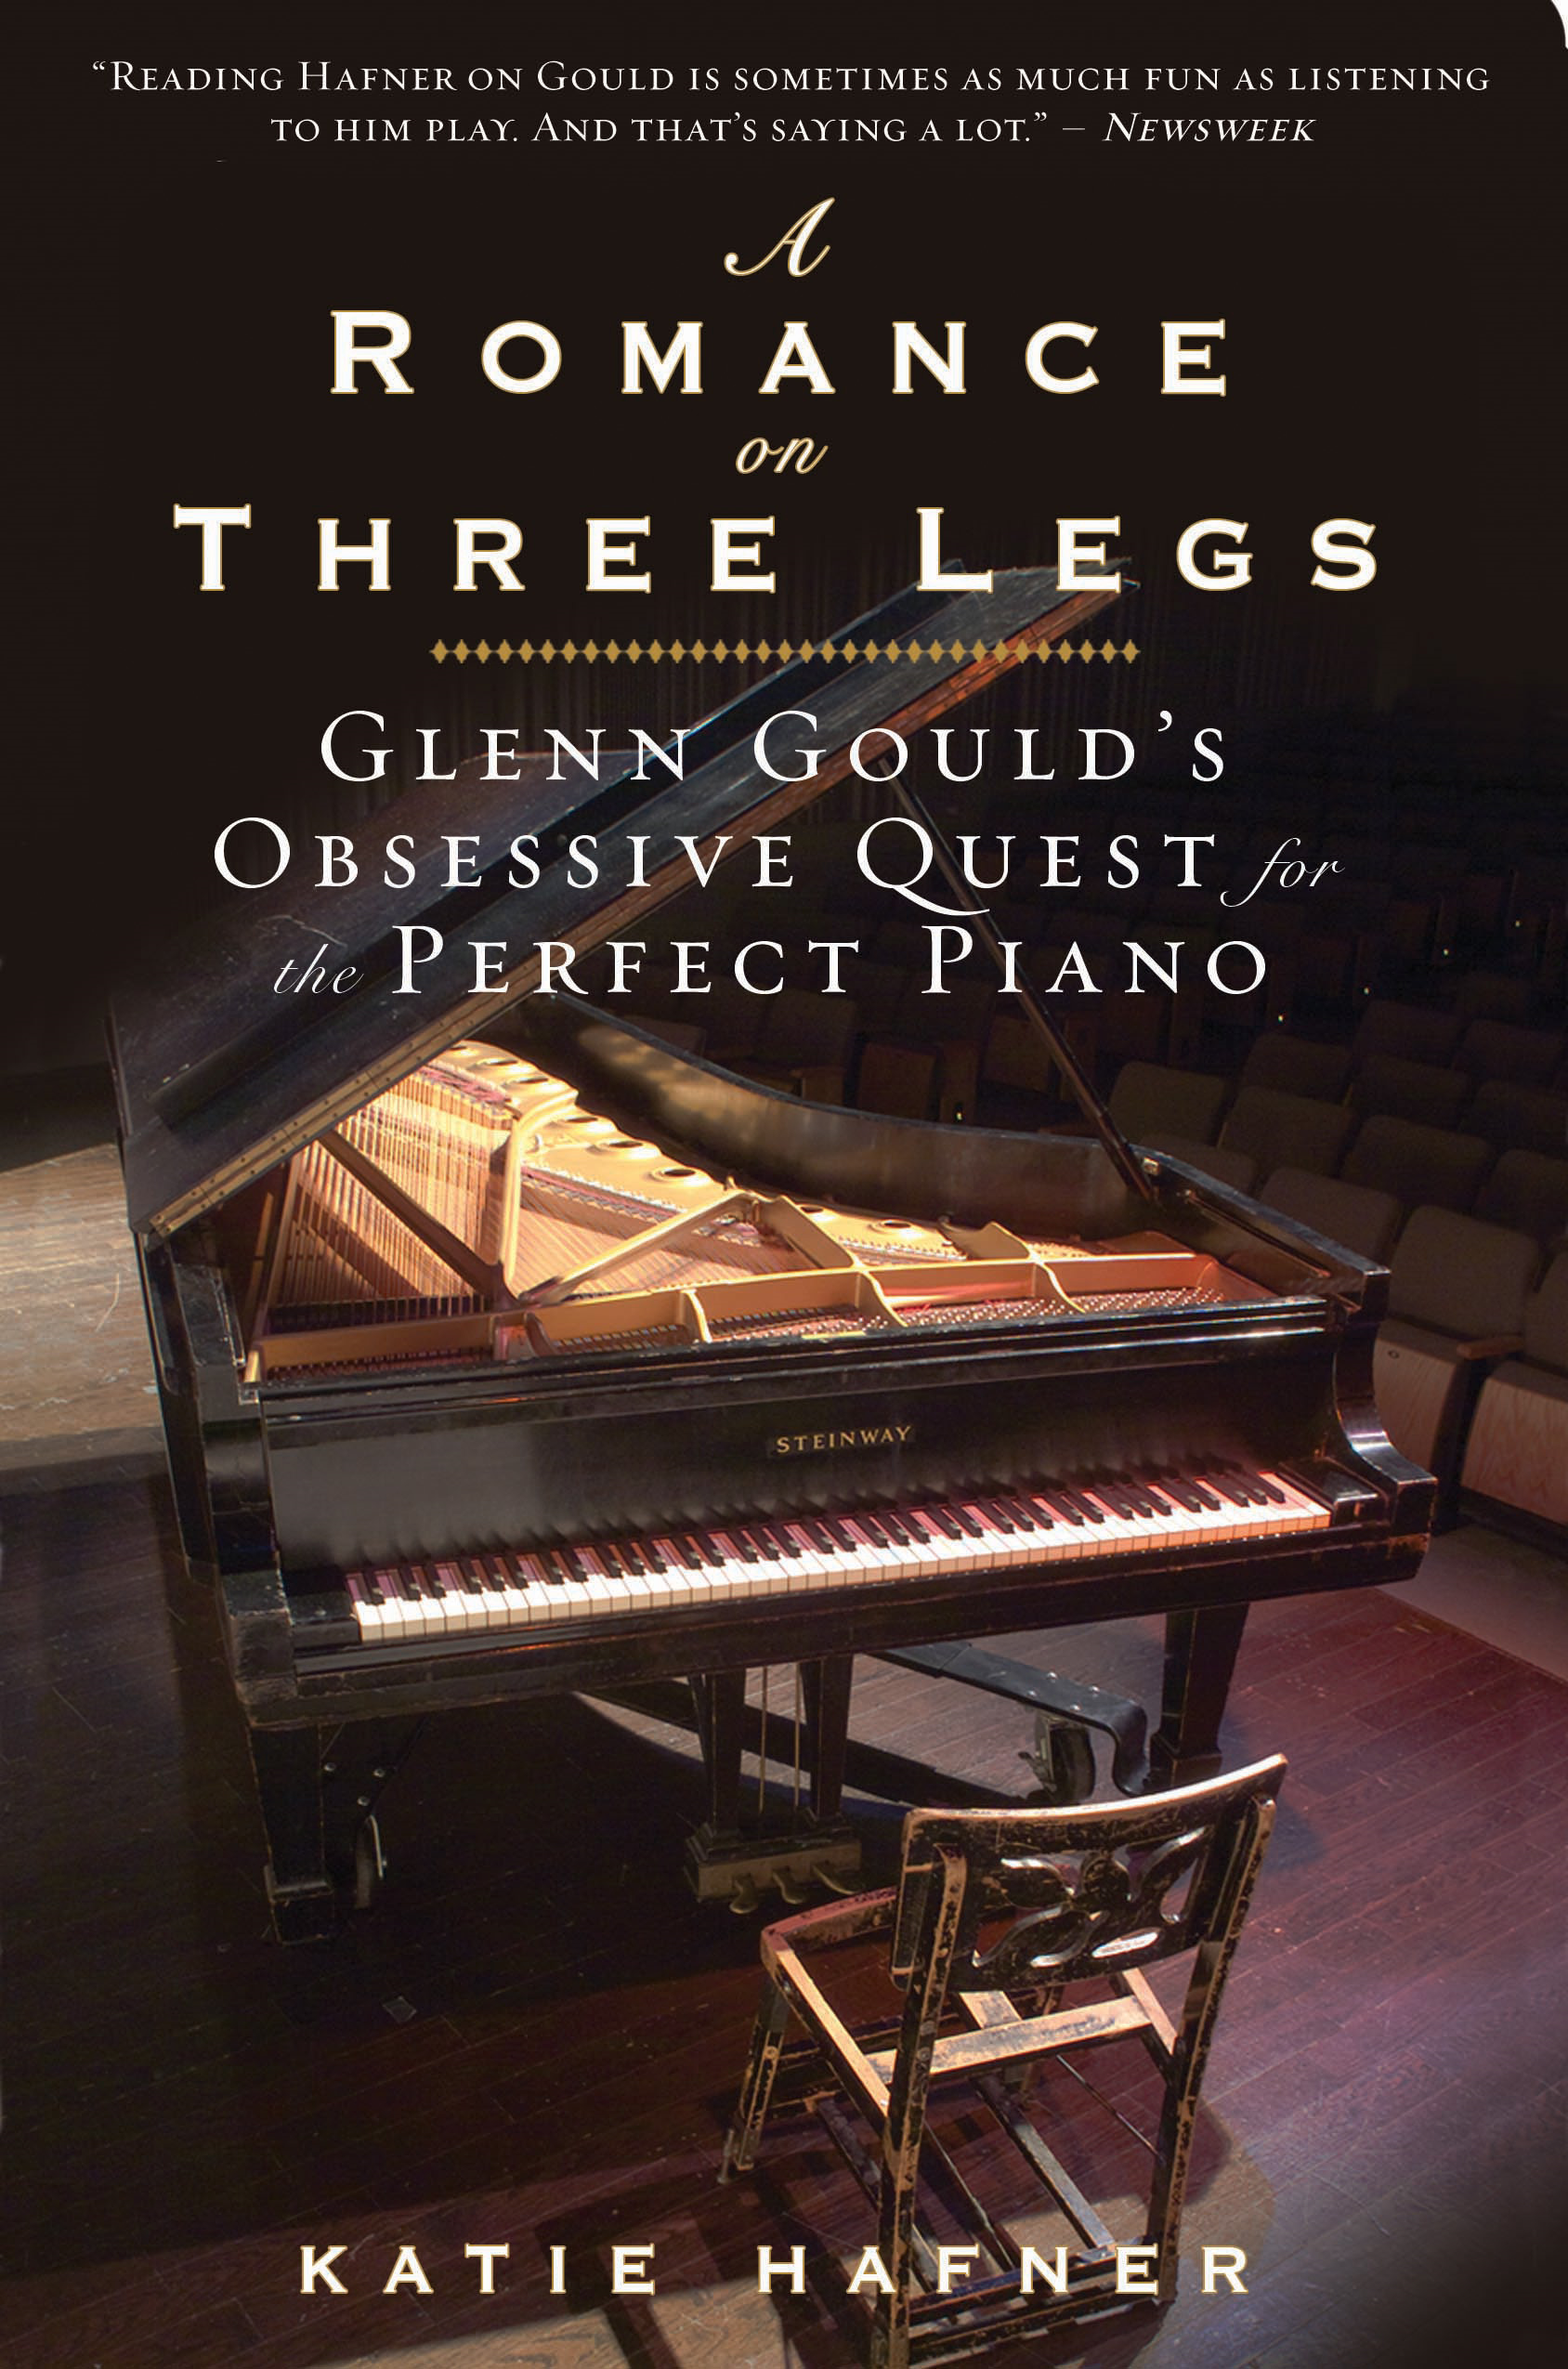 A Romance on Three Legs: Glenn Gould's Obsessive Quest for the Perfect Piano By: Katie Hafner